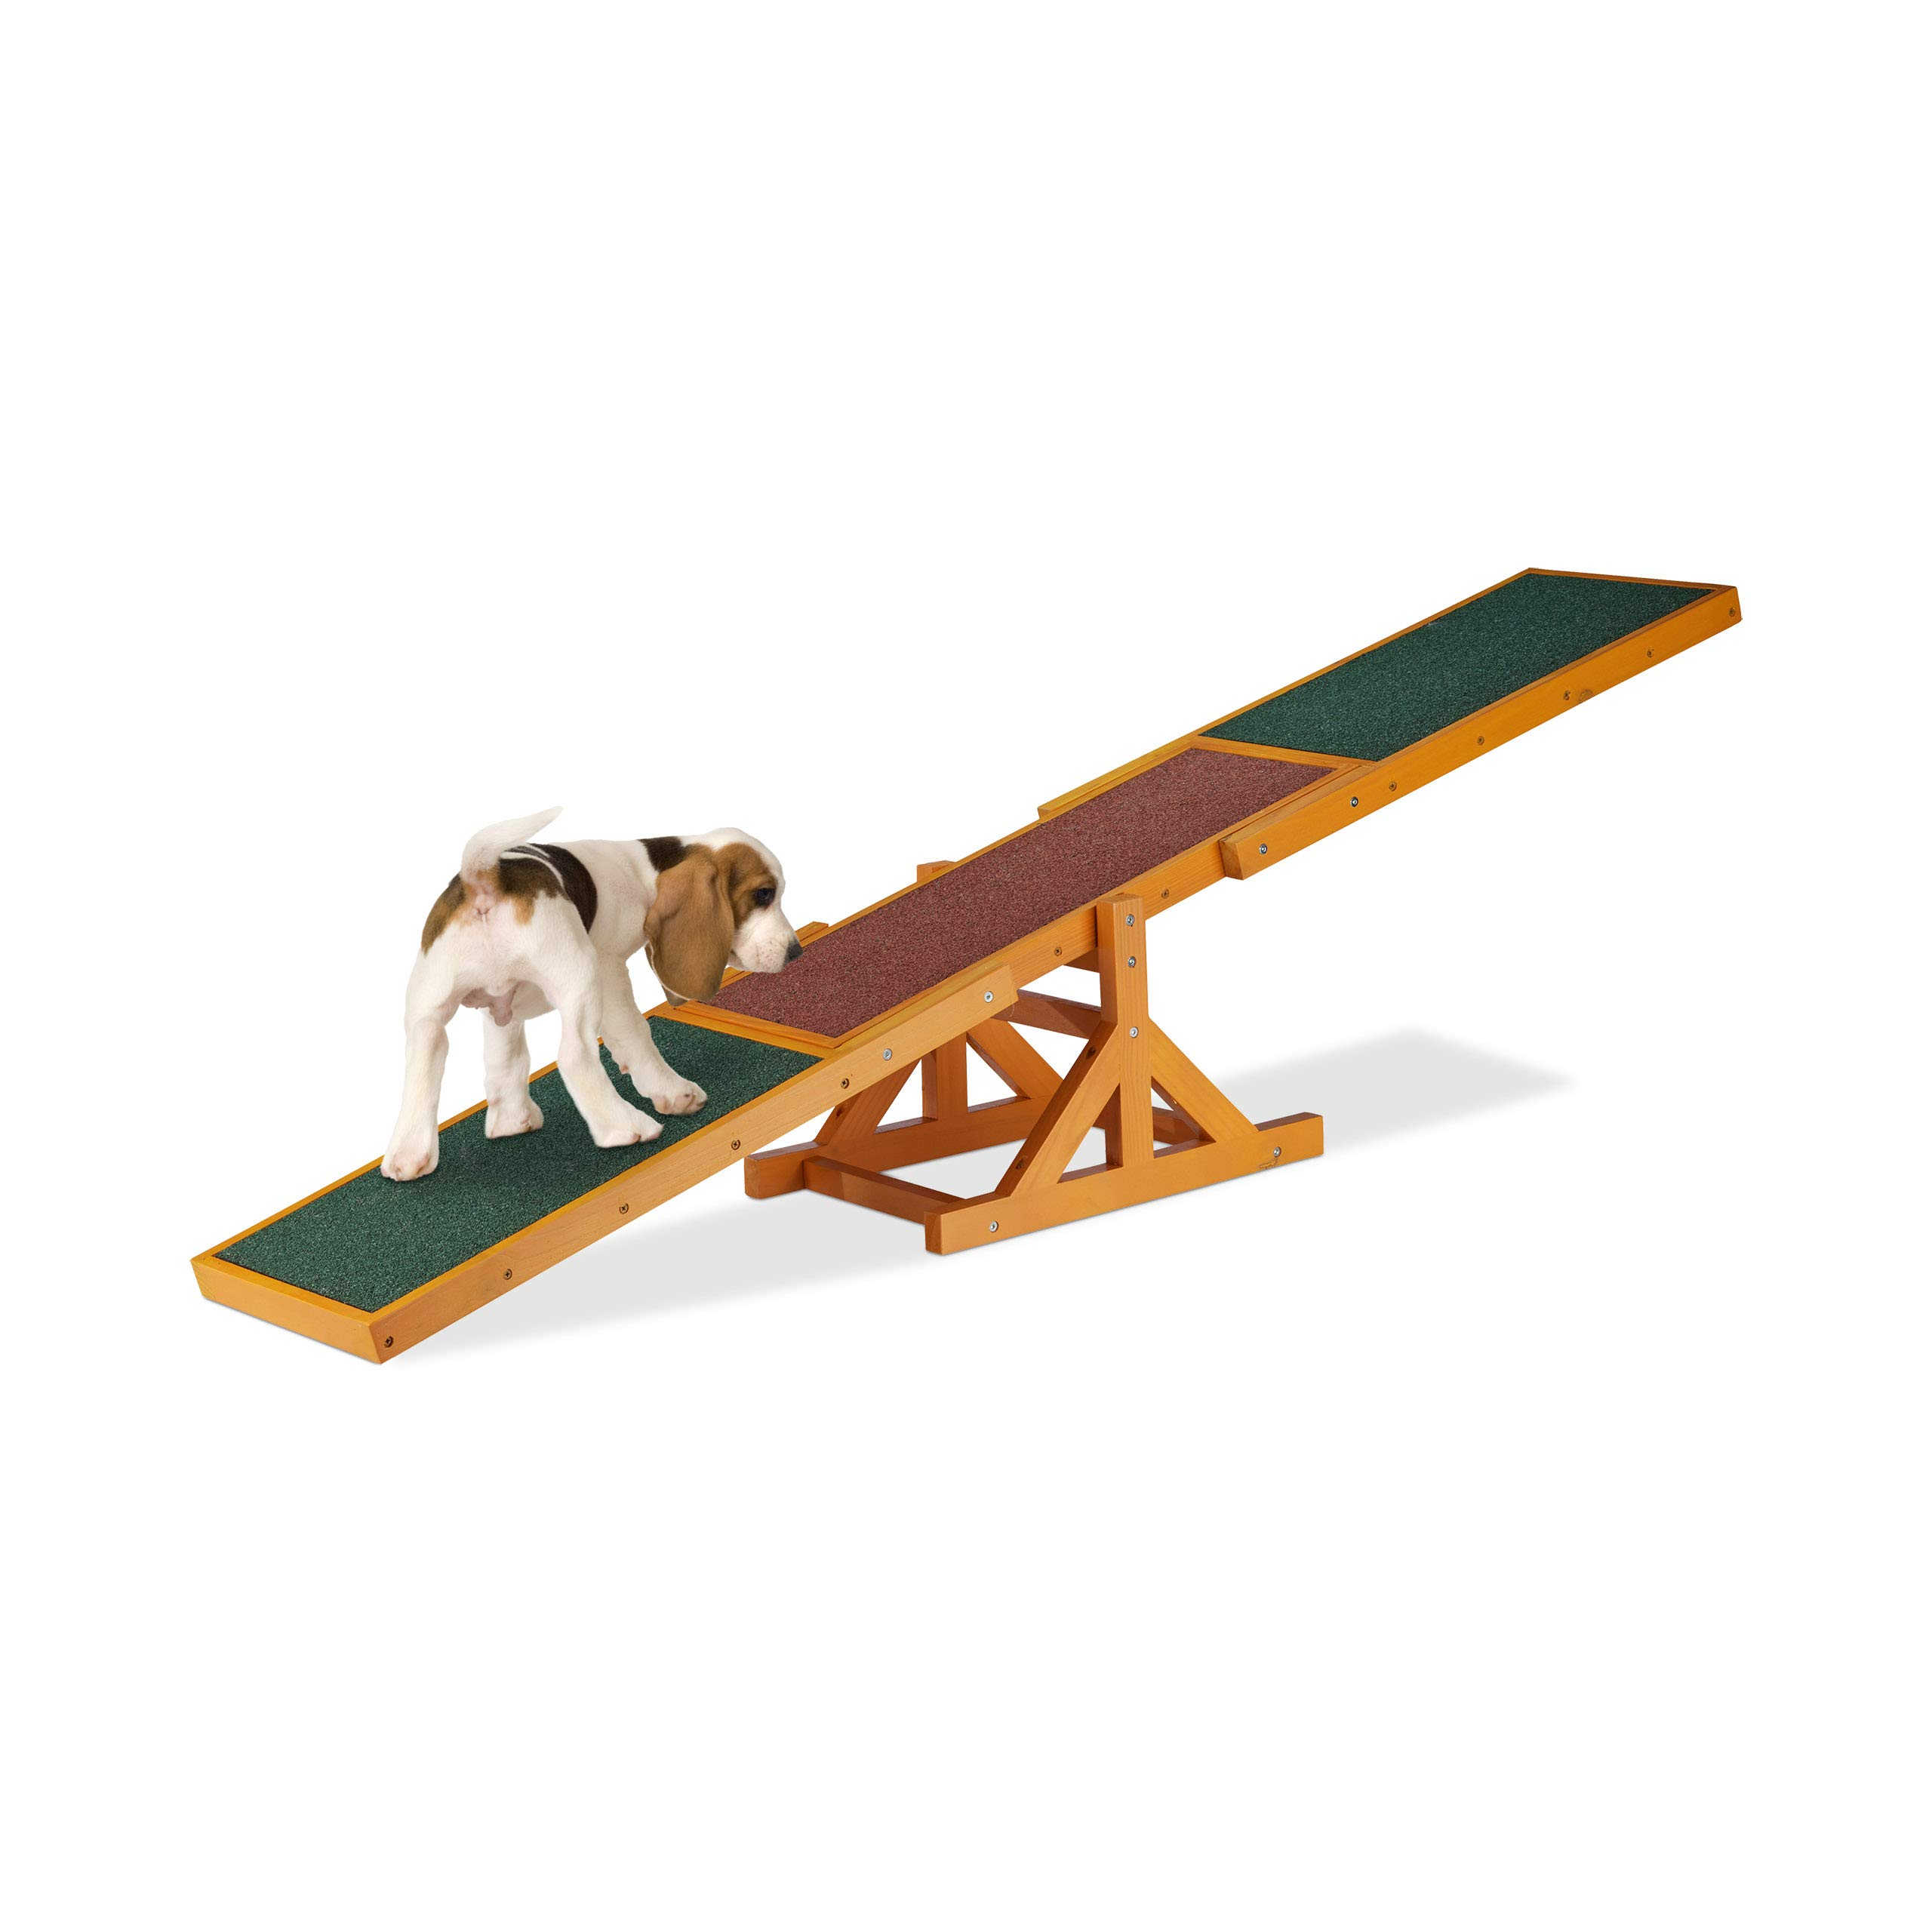 Relaxdays Colourful Wooden Pet Seesaw for Big and Small Dogs, Equipment for Agility and Obedience Training, 54 x 180 x 30 cm, Brown